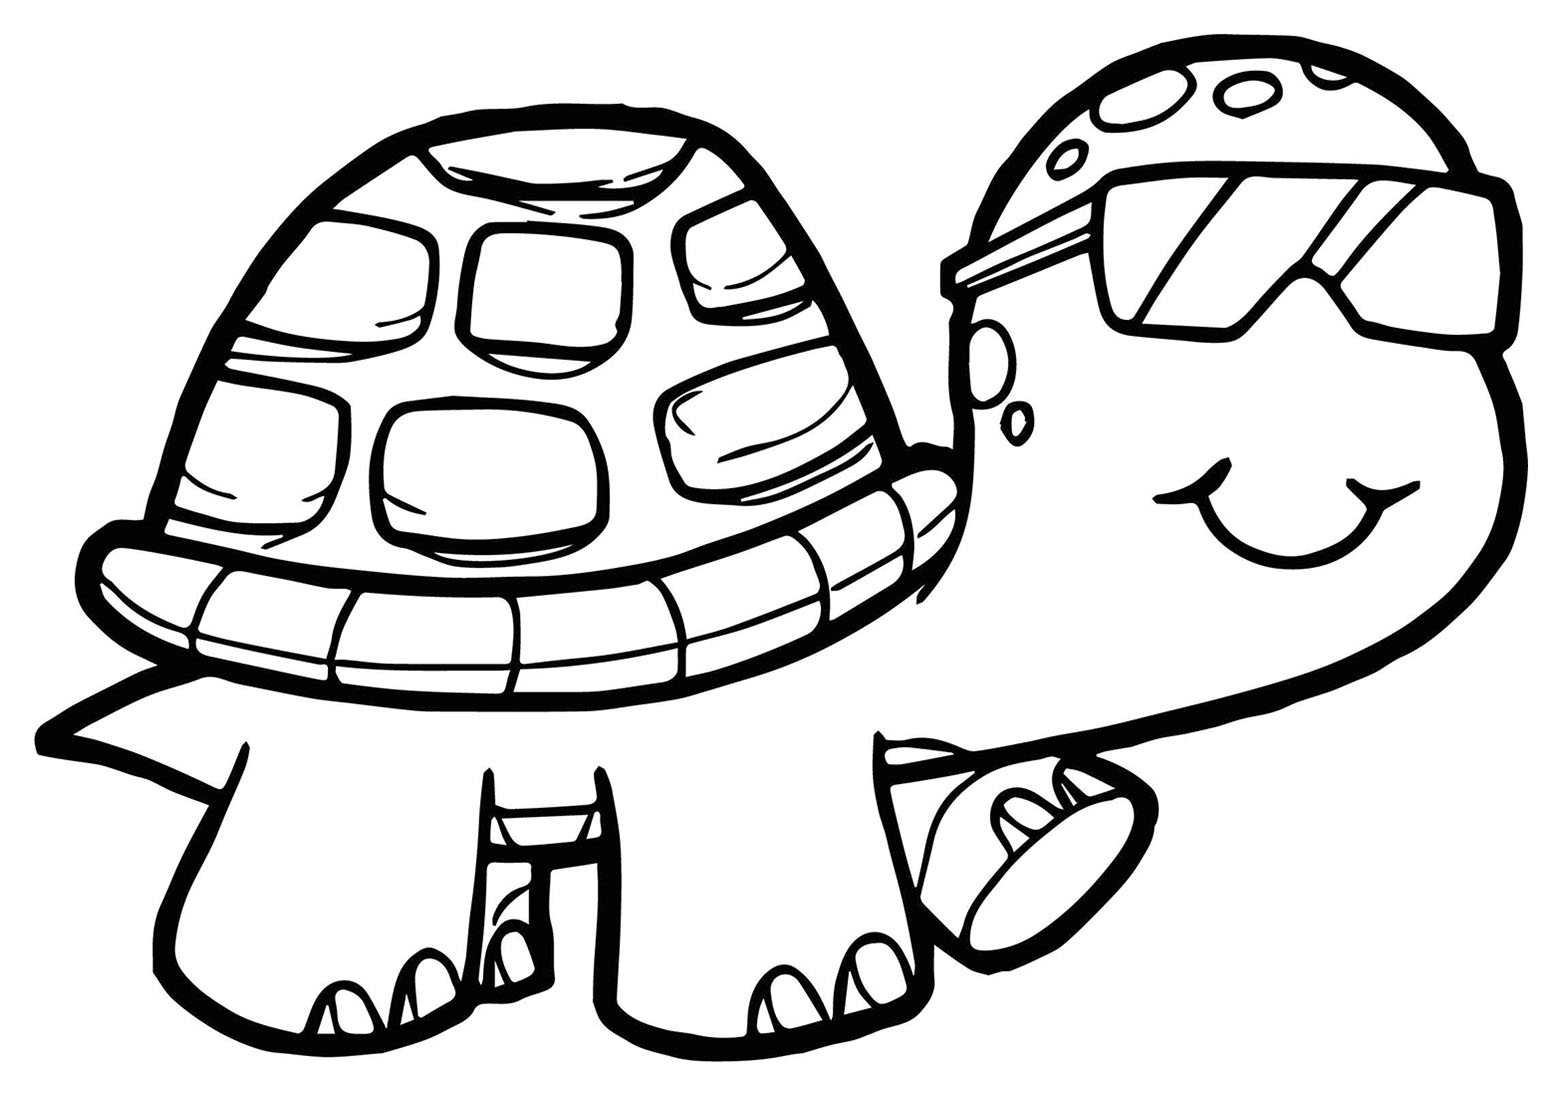 turtle coloring pictures to print coloring pages turtles free printable coloring pages print turtle pictures to coloring